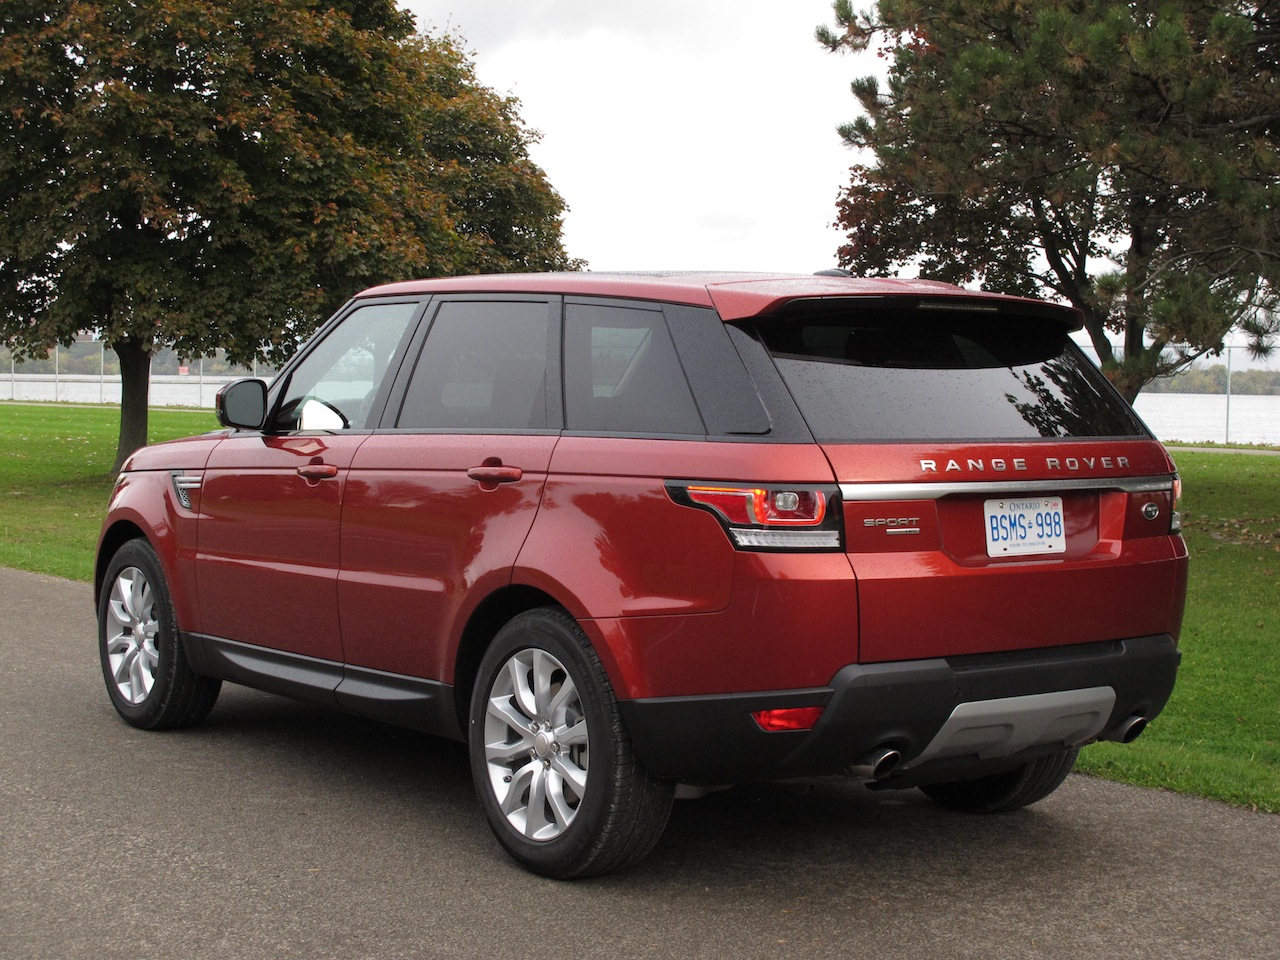 2014 range rover sport v6 hse and 2014 bmw x5 xdrive50i photoshoot comparison cars photos. Black Bedroom Furniture Sets. Home Design Ideas